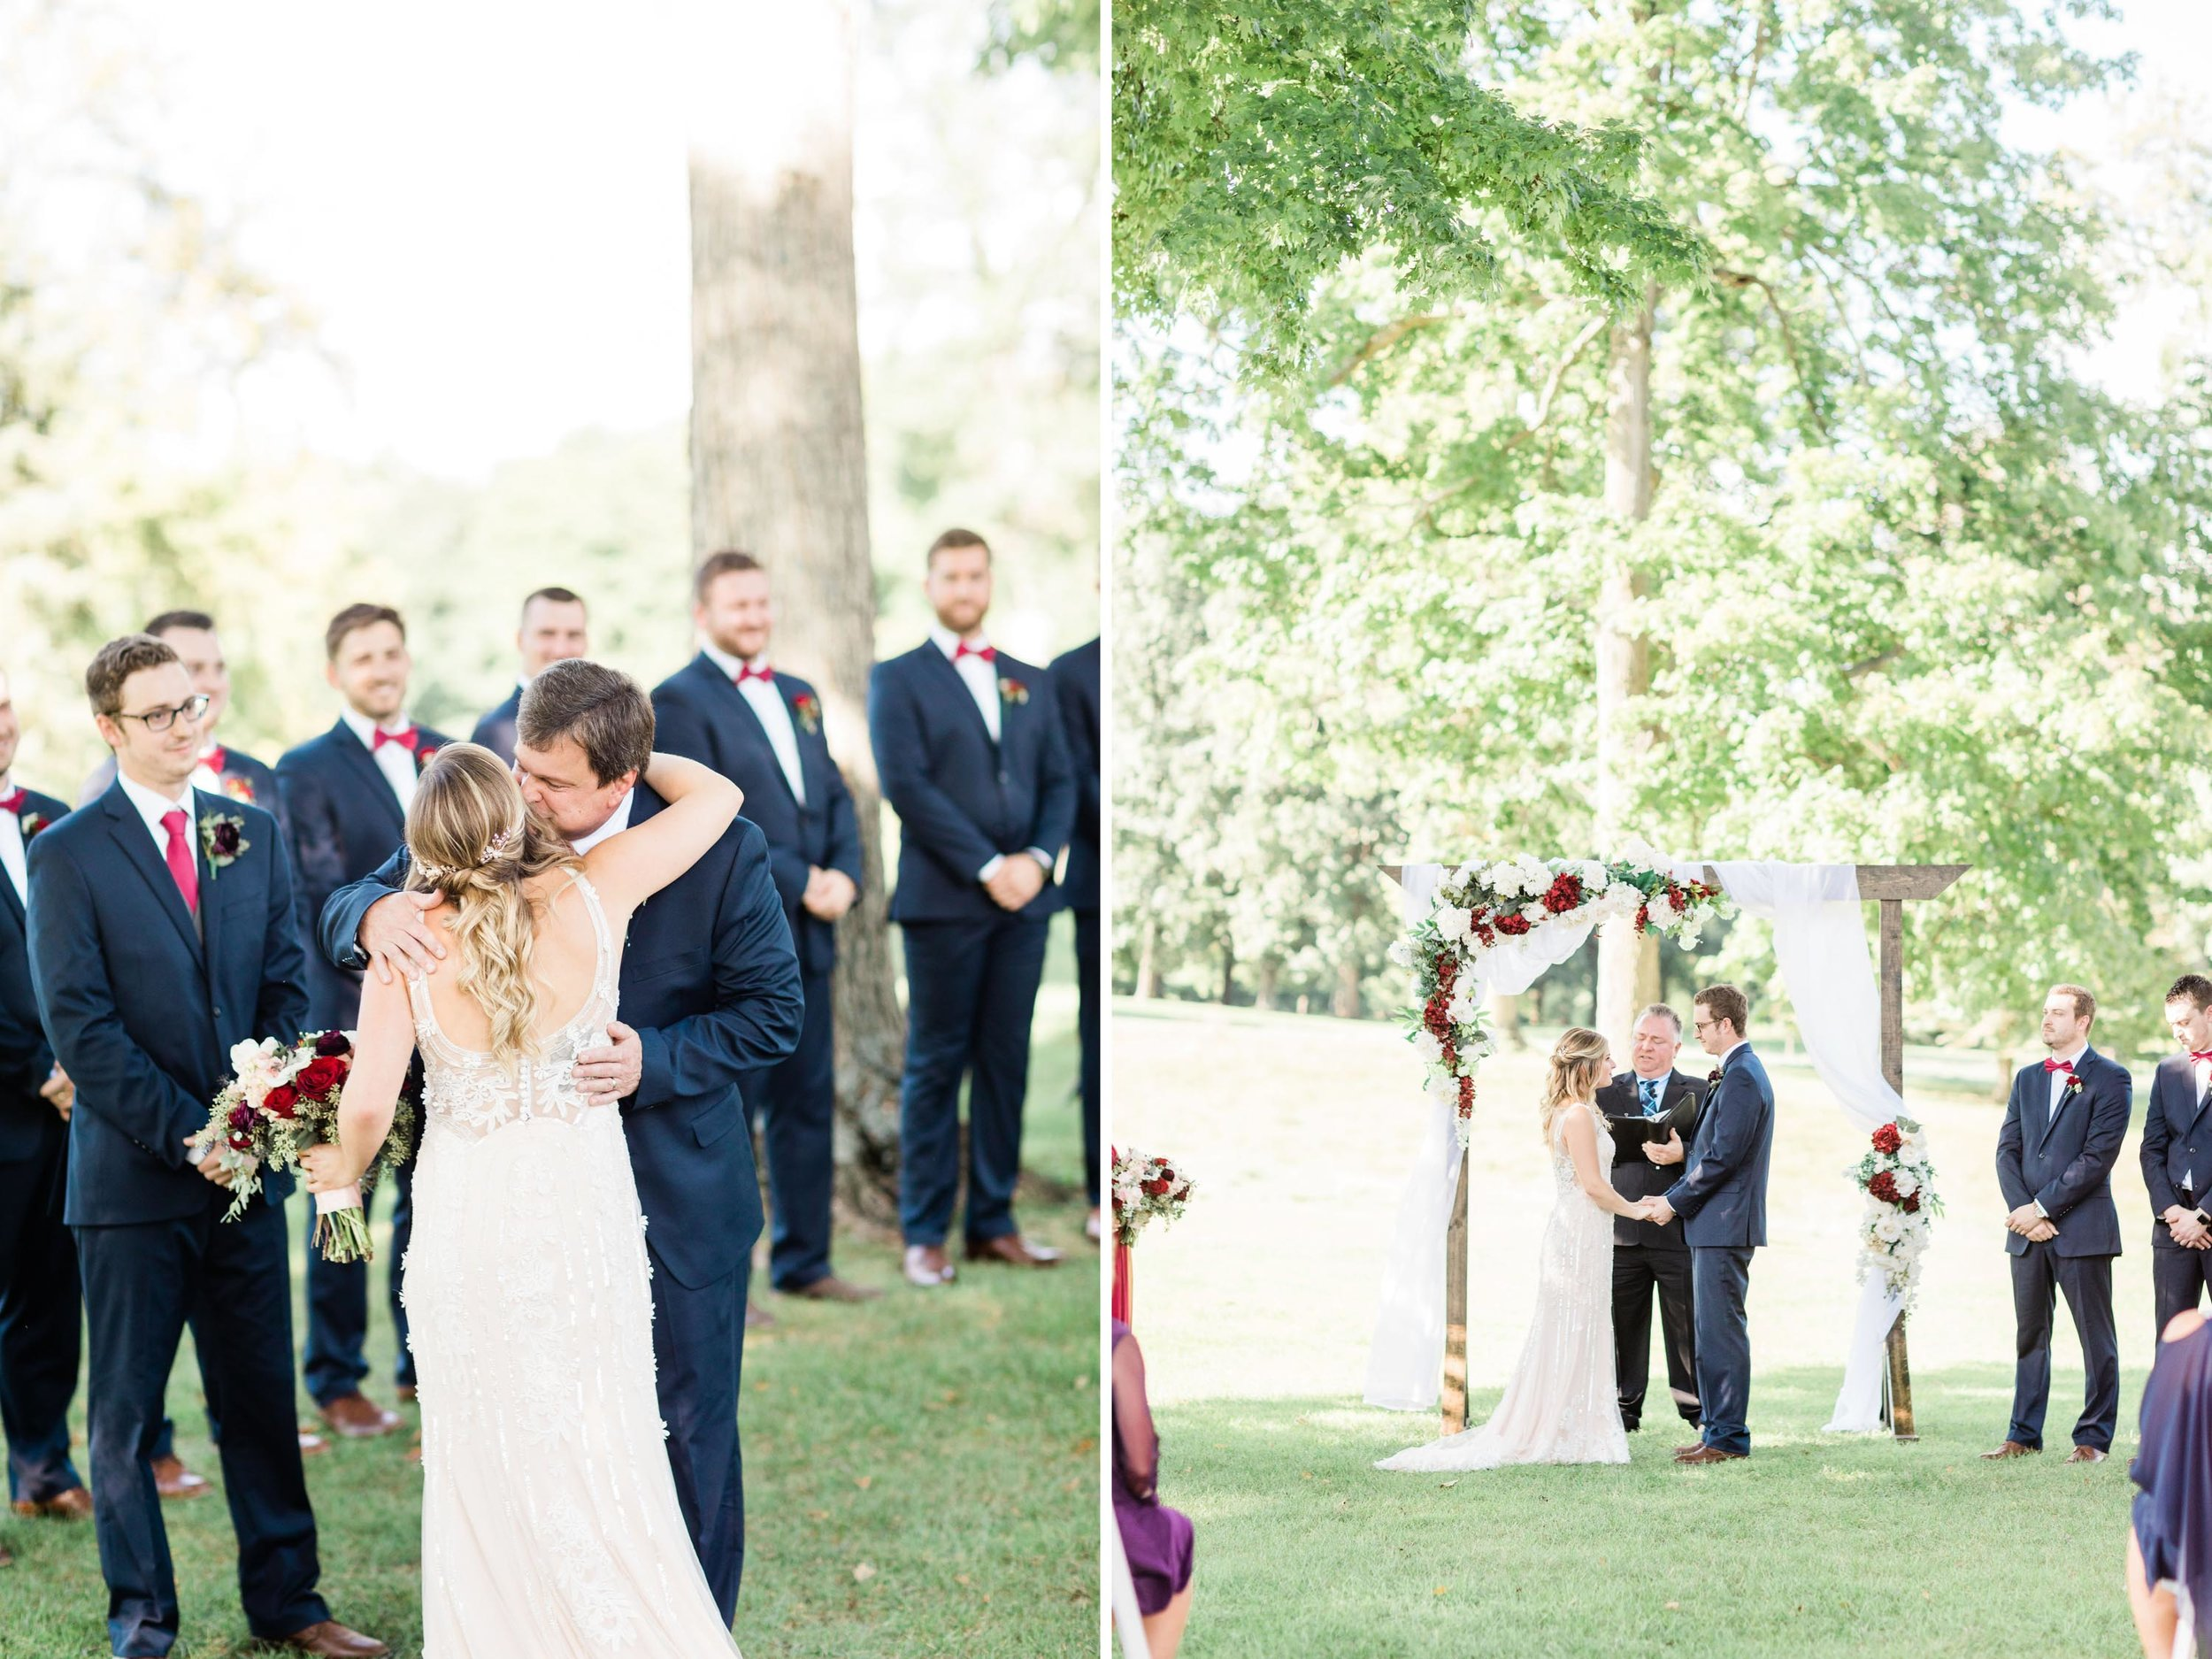 walnut grove golf club wedding.jpg